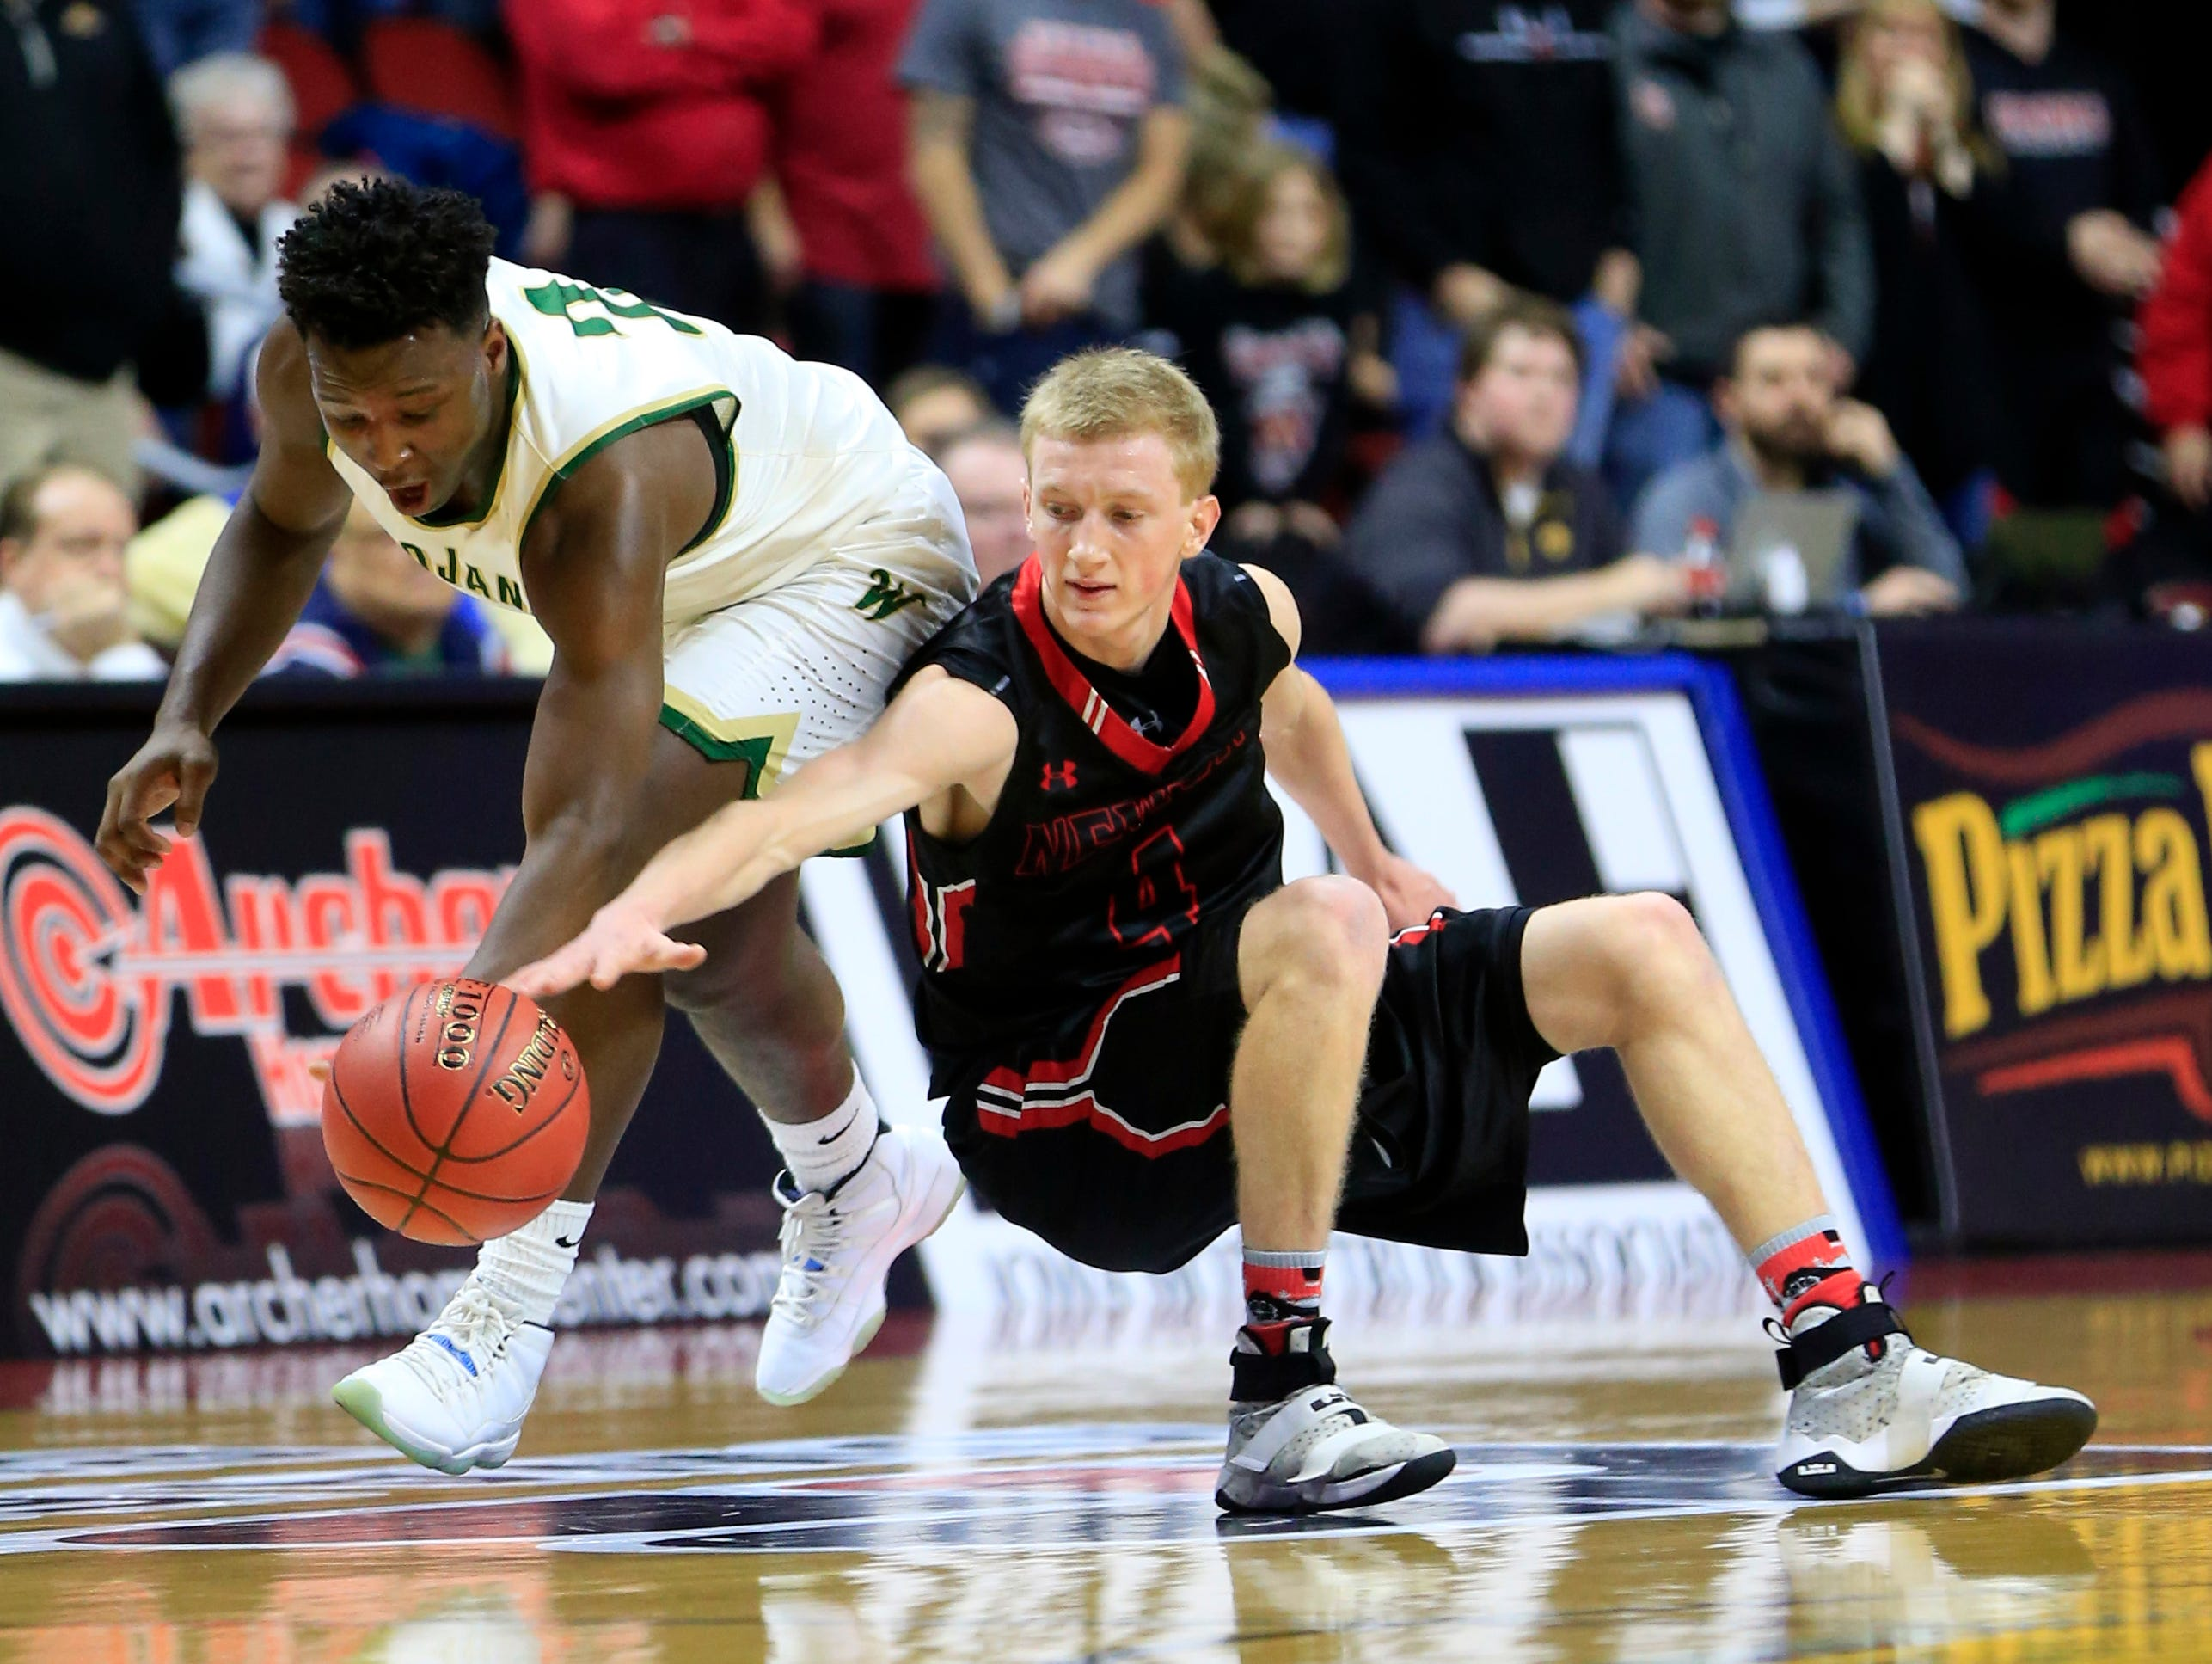 Devontae Lane of Iowa City West and Garrett Sturtz of Newton fight for the ball during the 4A quarter finals Wednesday, March 8, 2017.